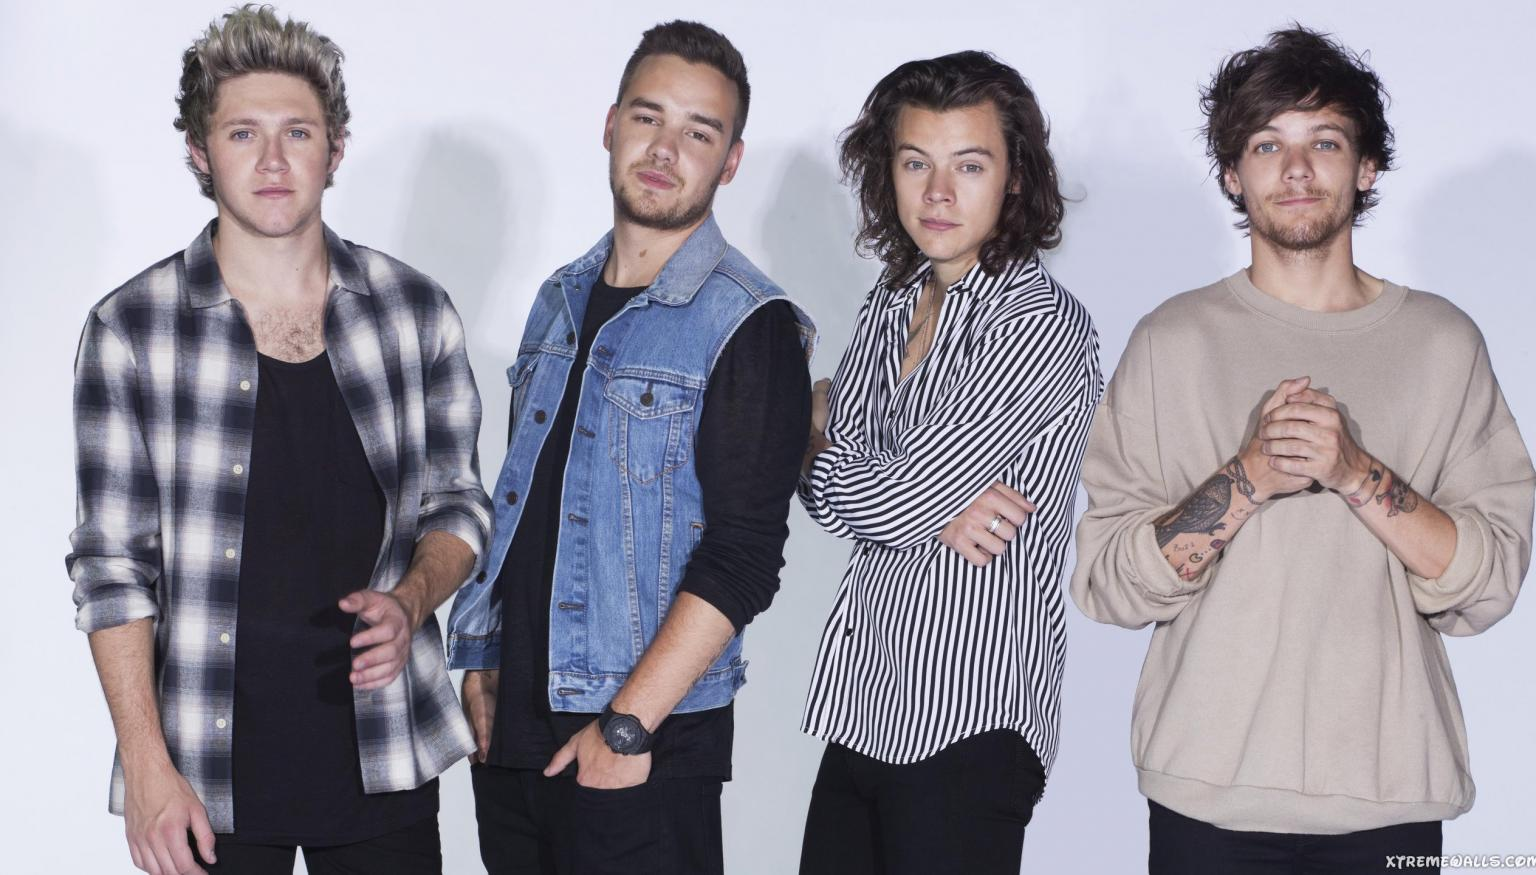 Louis Tomlinson confesses sexuality scandal rocked One